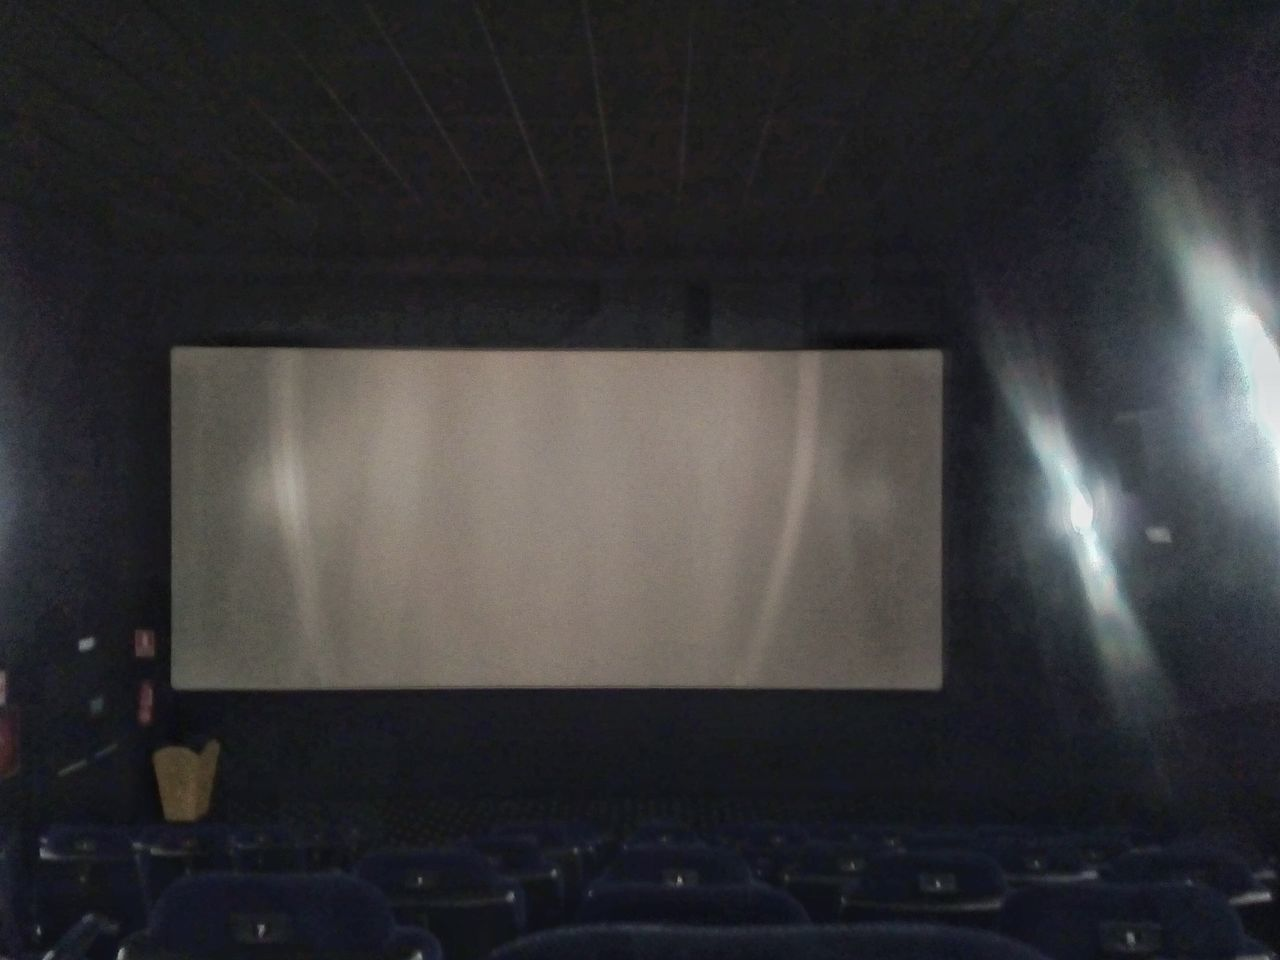 Taking Photos Goodnight EyeEm CinemaTime Light In The Darkness Good Night make your own movie. Blank cinema screen